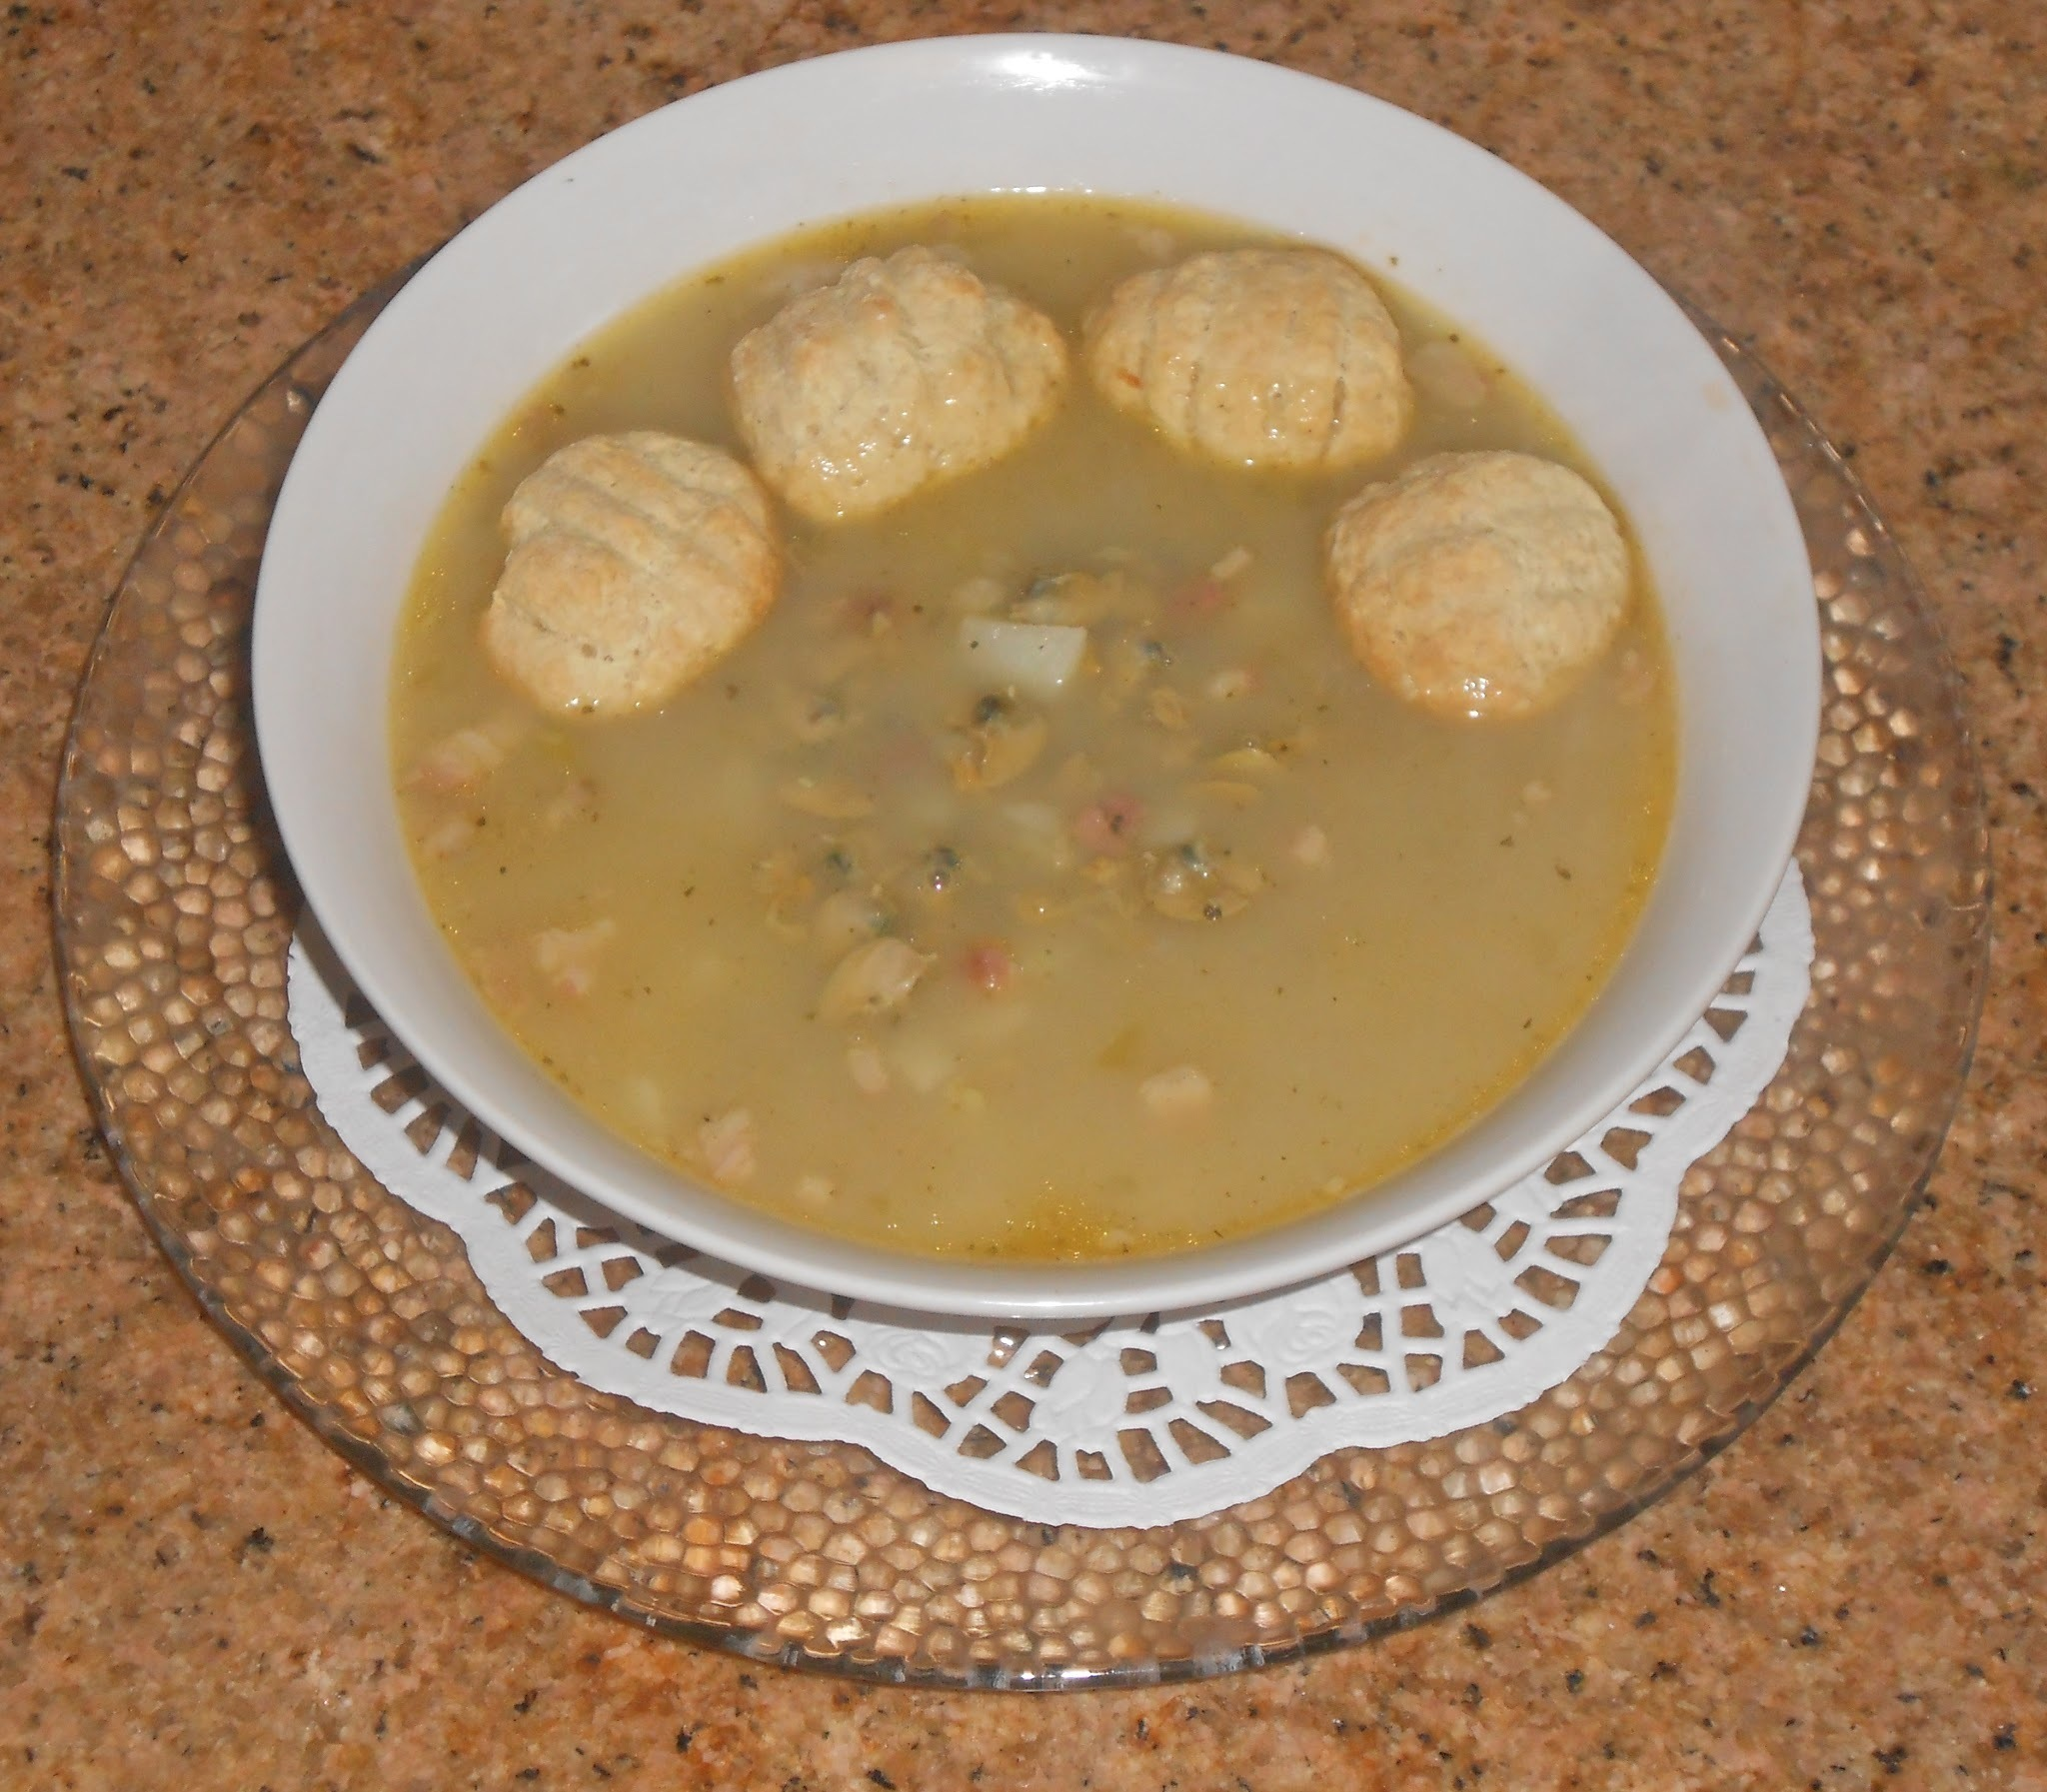 Rhode Island Chowder - South County Style with Oyster Crackers ~ Best Shoe Repair, Las Vegas!